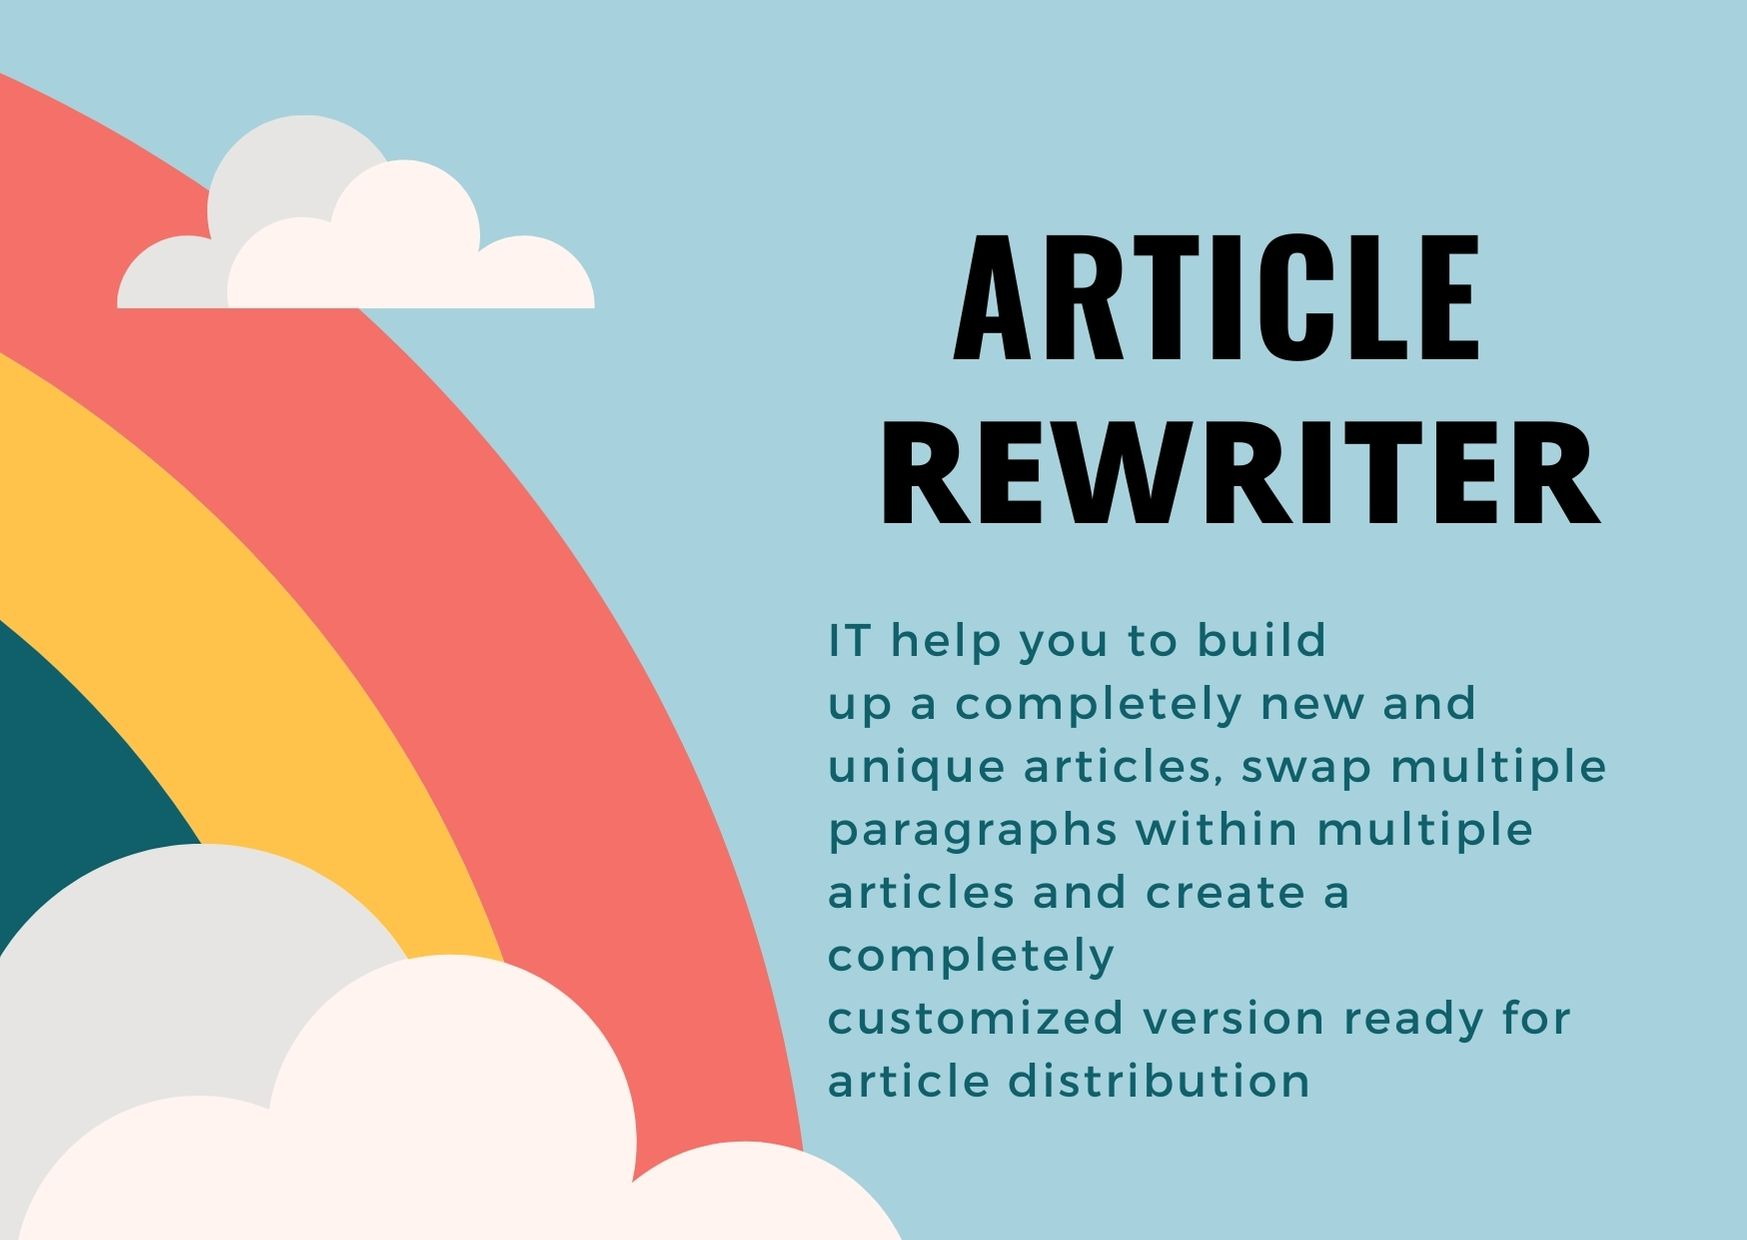 Article Rewriter- This software can help you to build up a completely new and unique articles